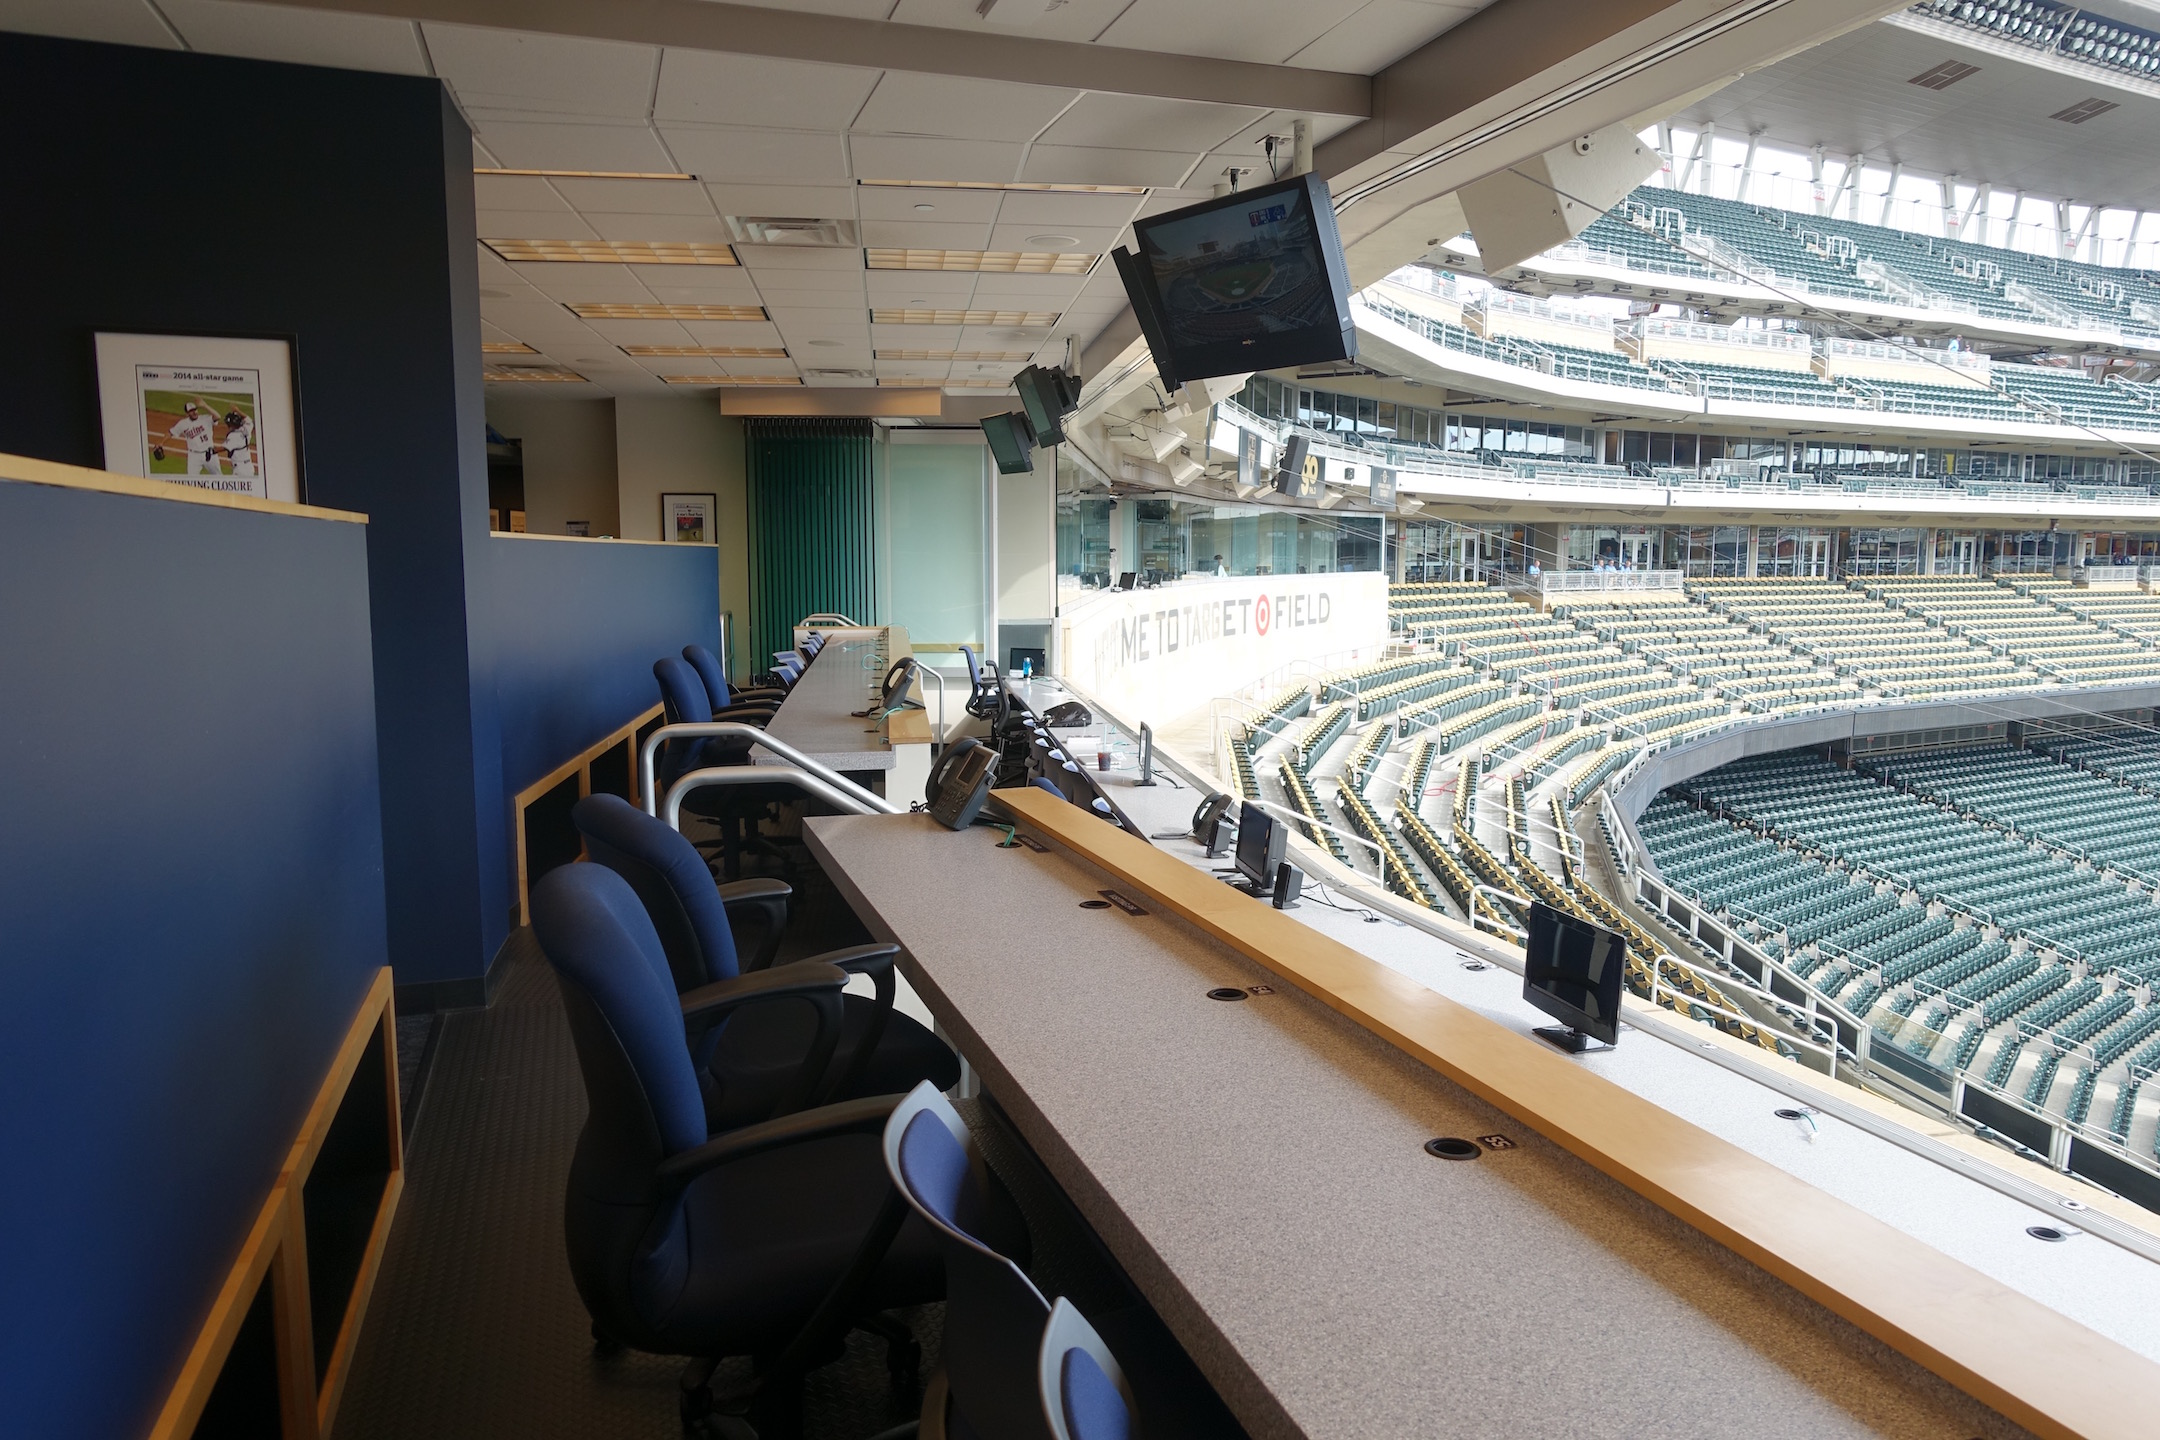 The view from the press box at Target Field. Photo Credit: Ryan Schaal